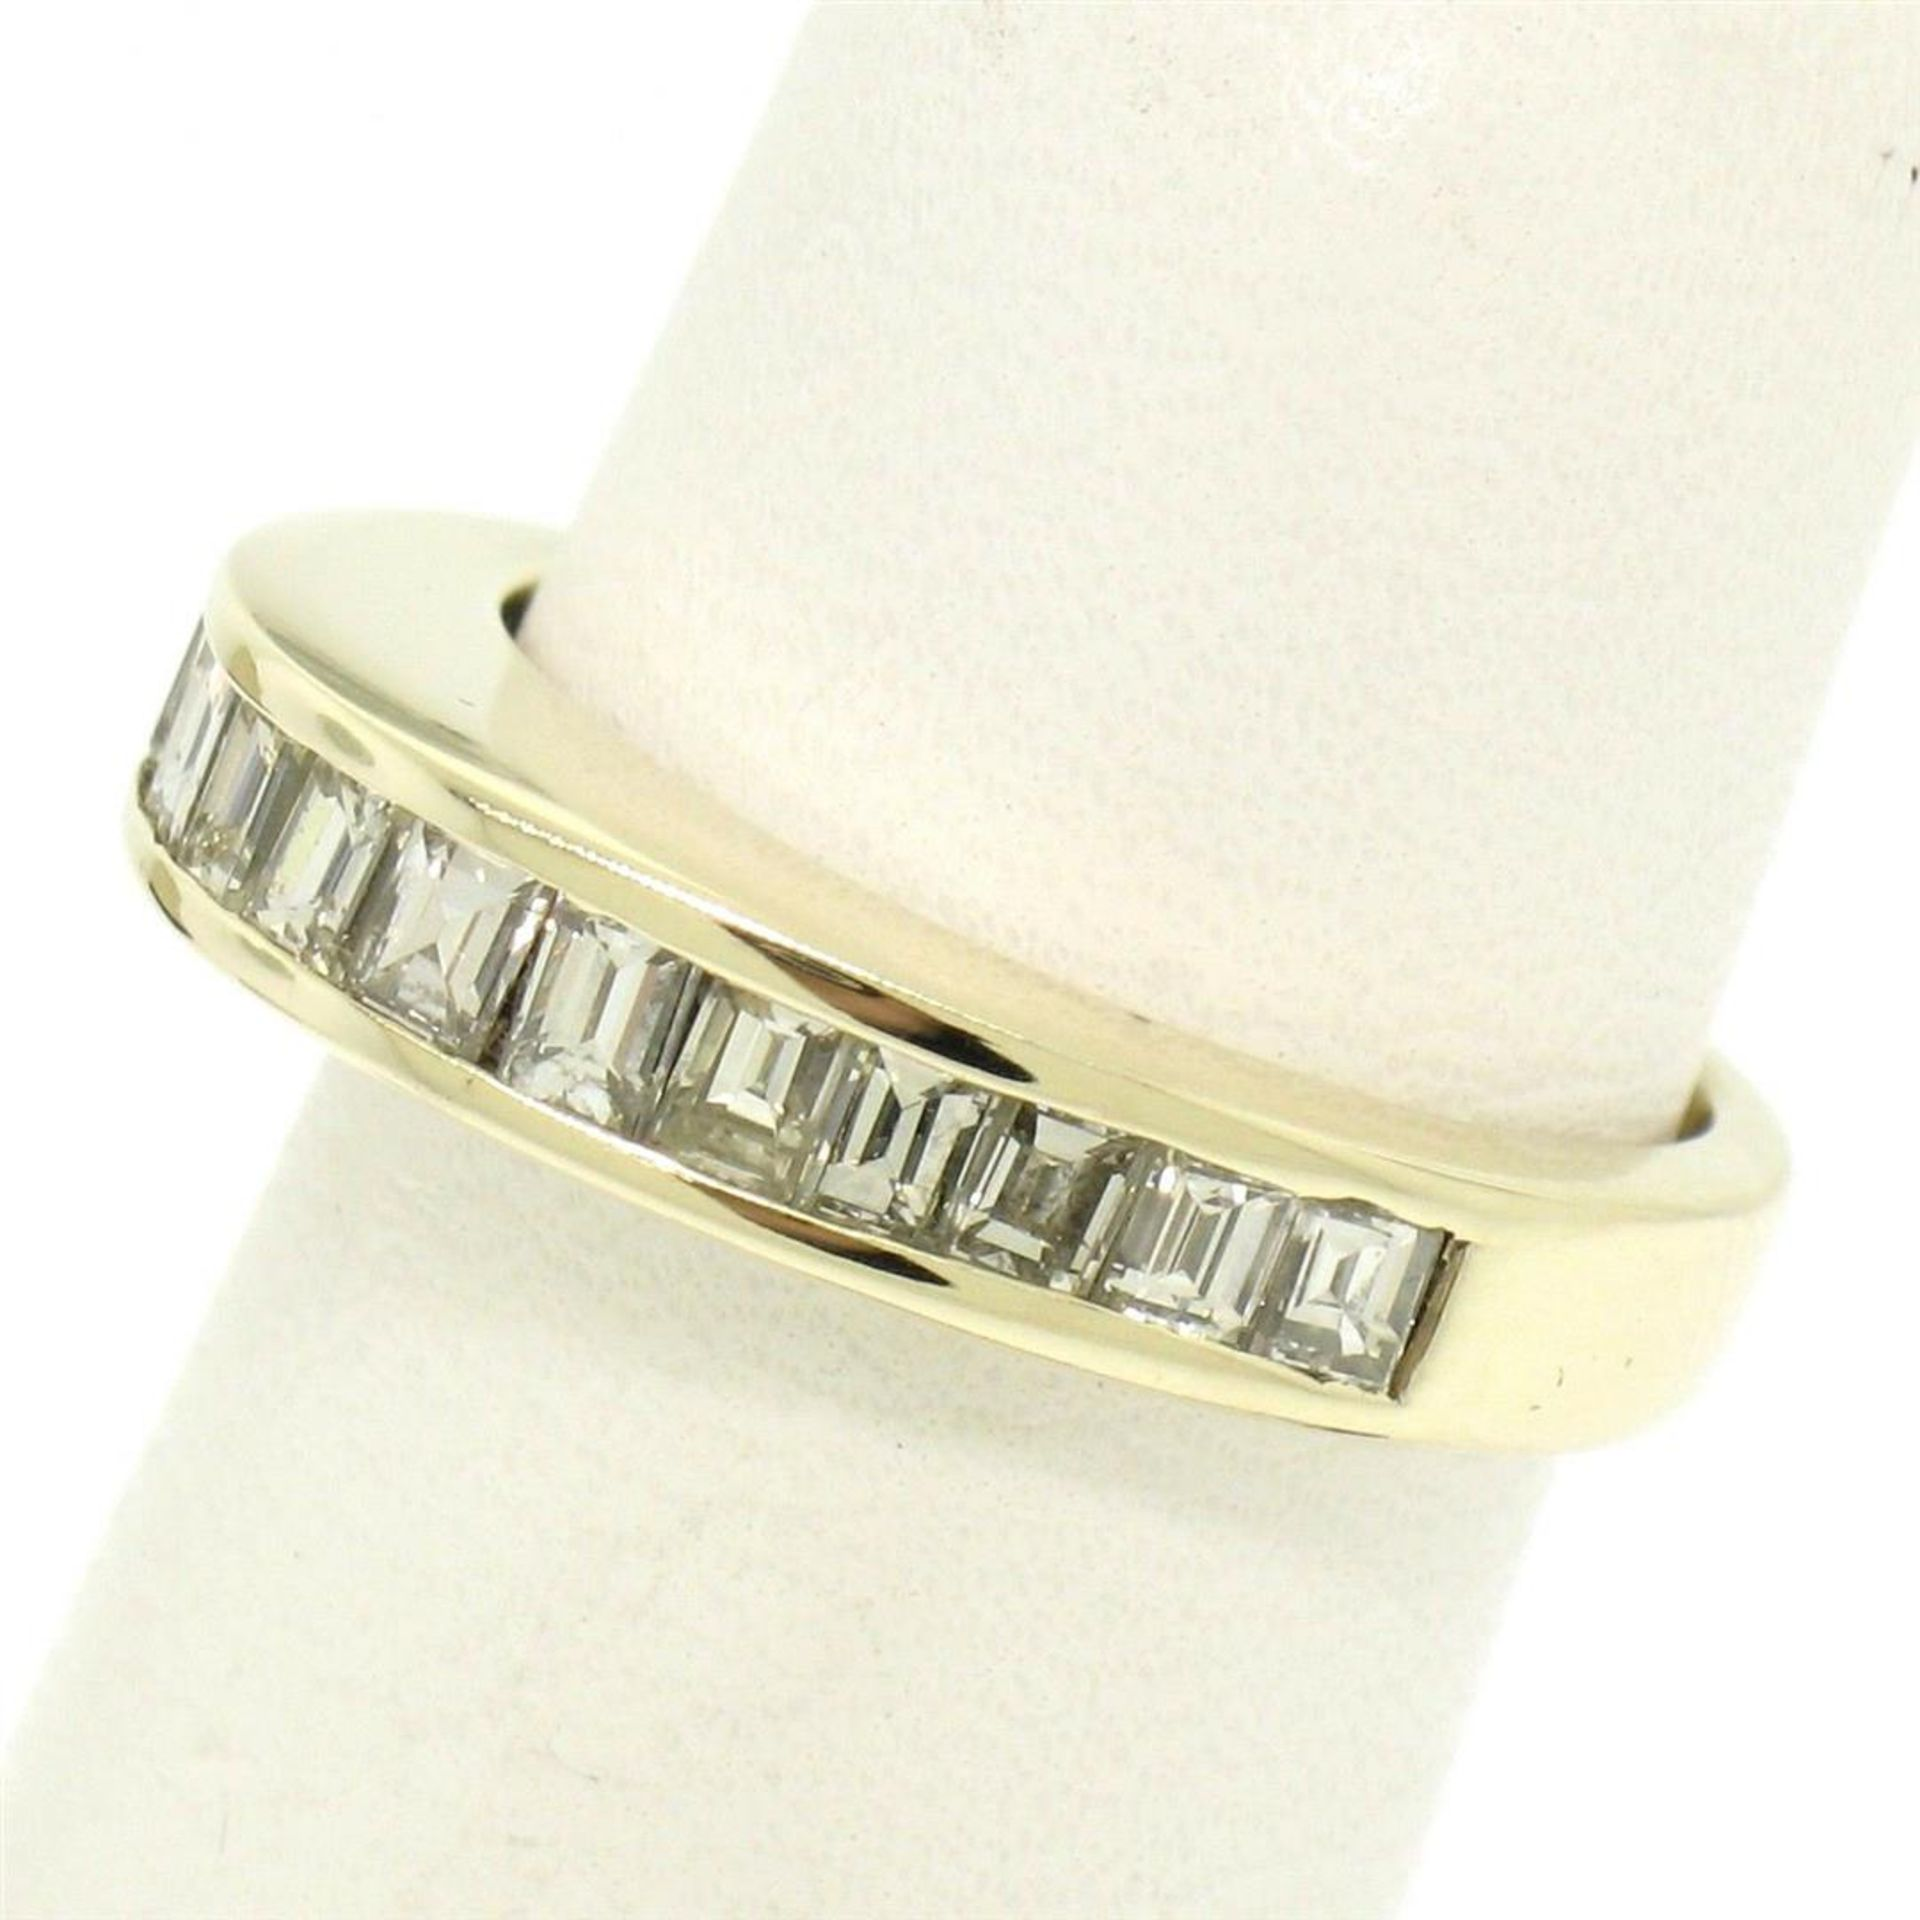 14kt Yellow Gold 1.00 ctw Baguette Diamond Channel Domed Wedding Band Ring - Image 4 of 9